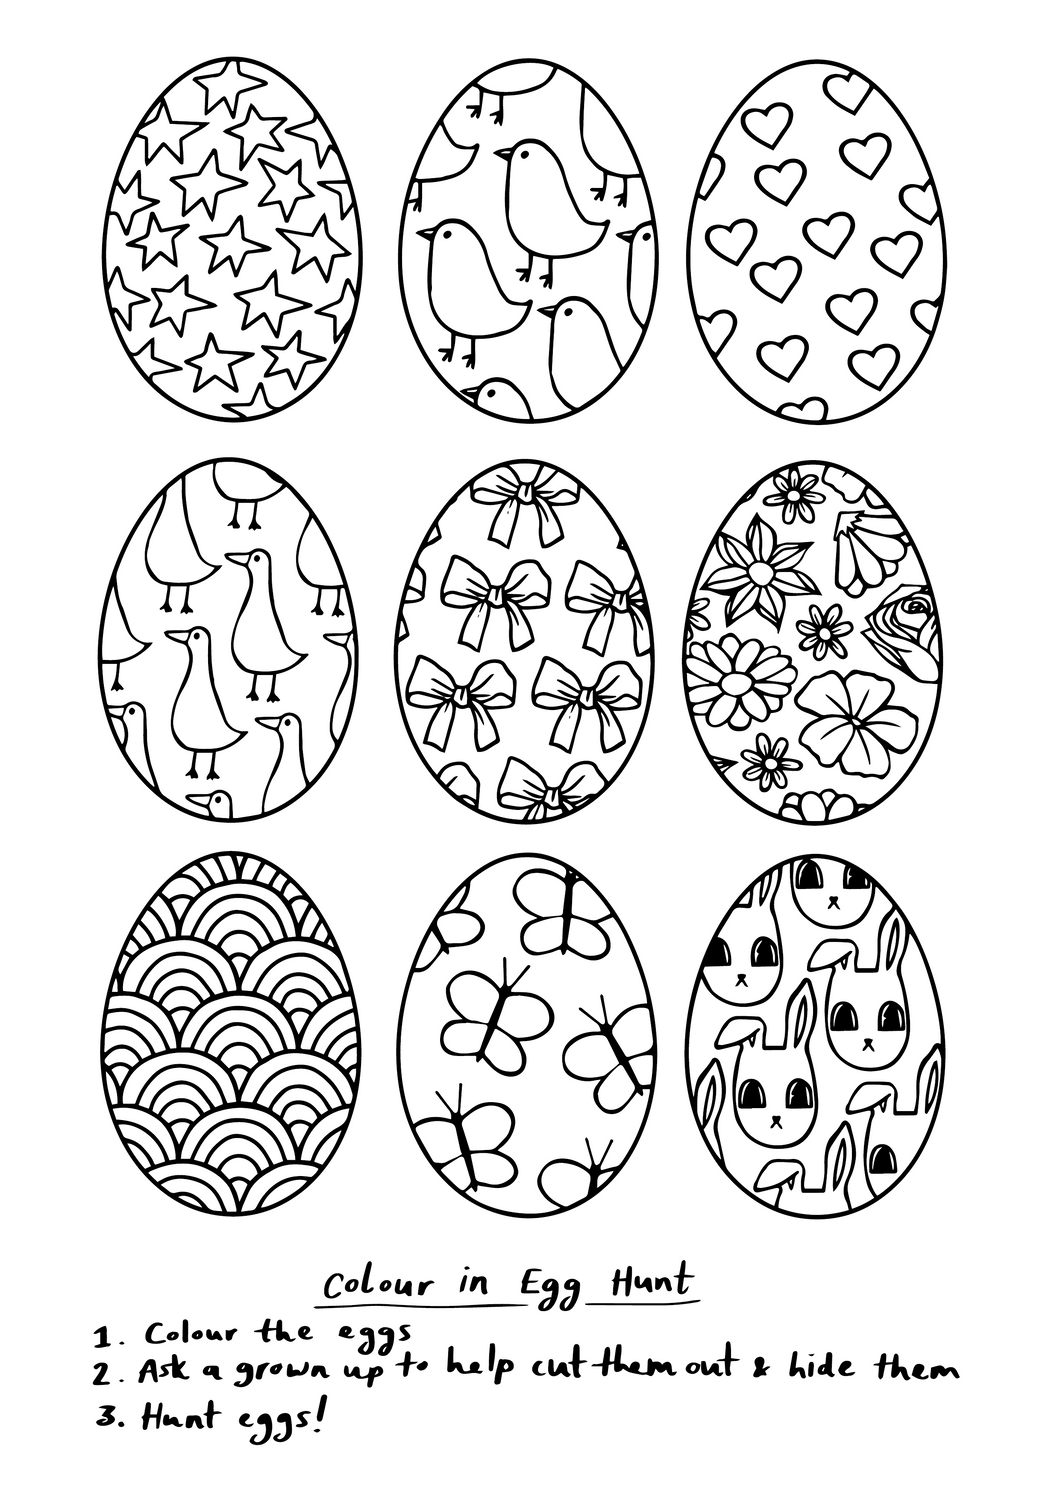 Colour in Egg Hunt Printable